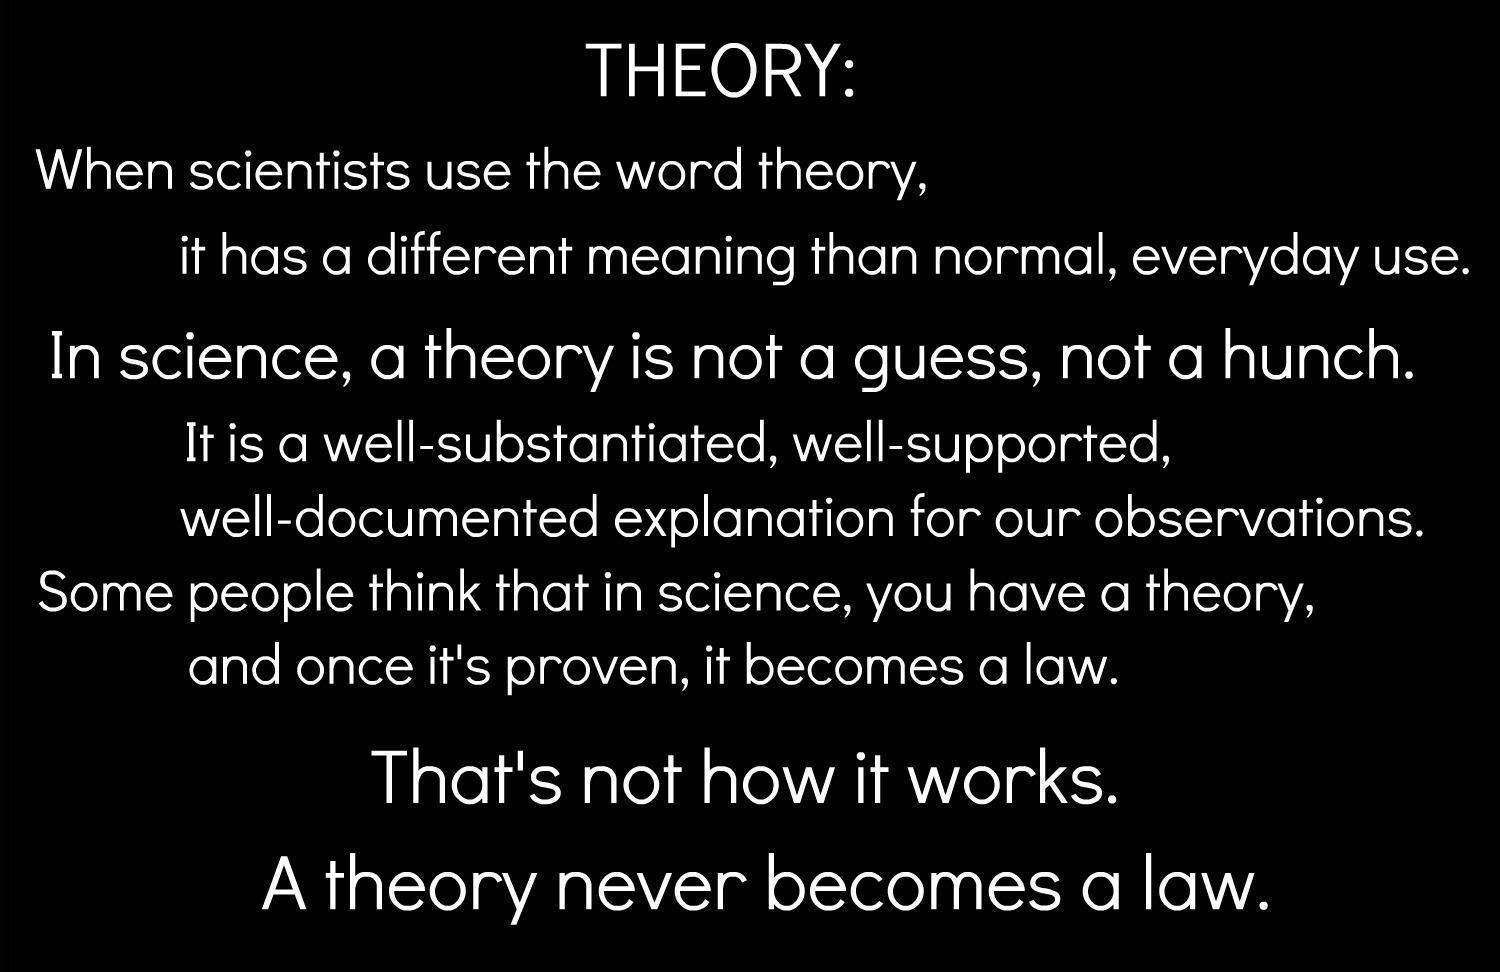 theory definition science scientific means mean theories innovation biology political words well environmental meaning word evolution education student ap think